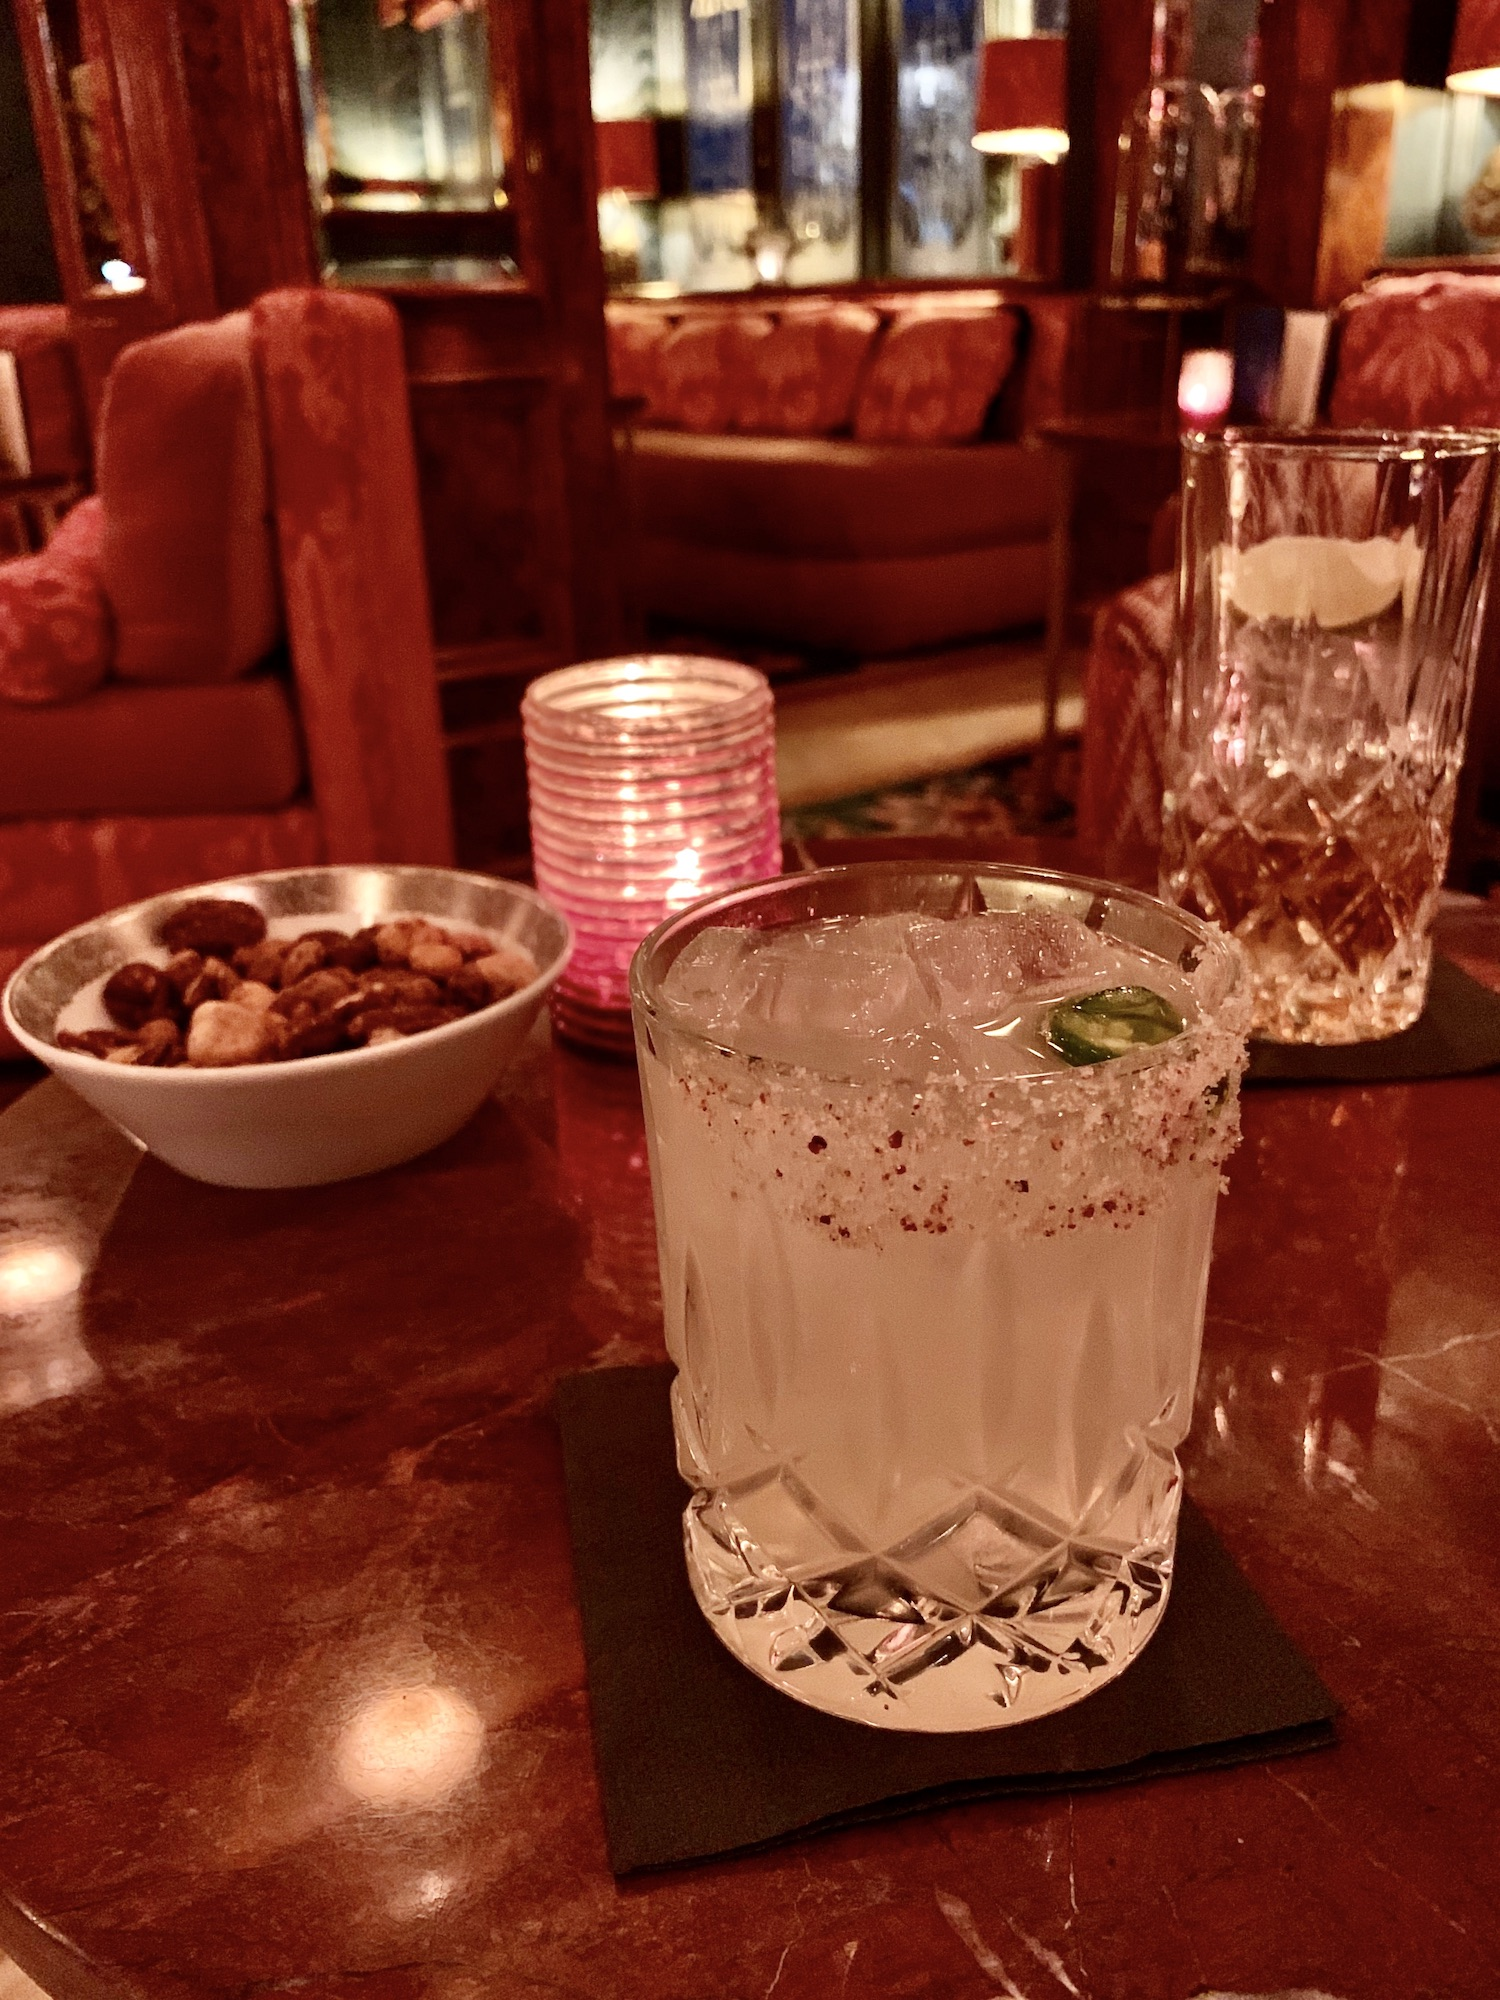 Lapérouse's spicy margarita is my favorite in Paris